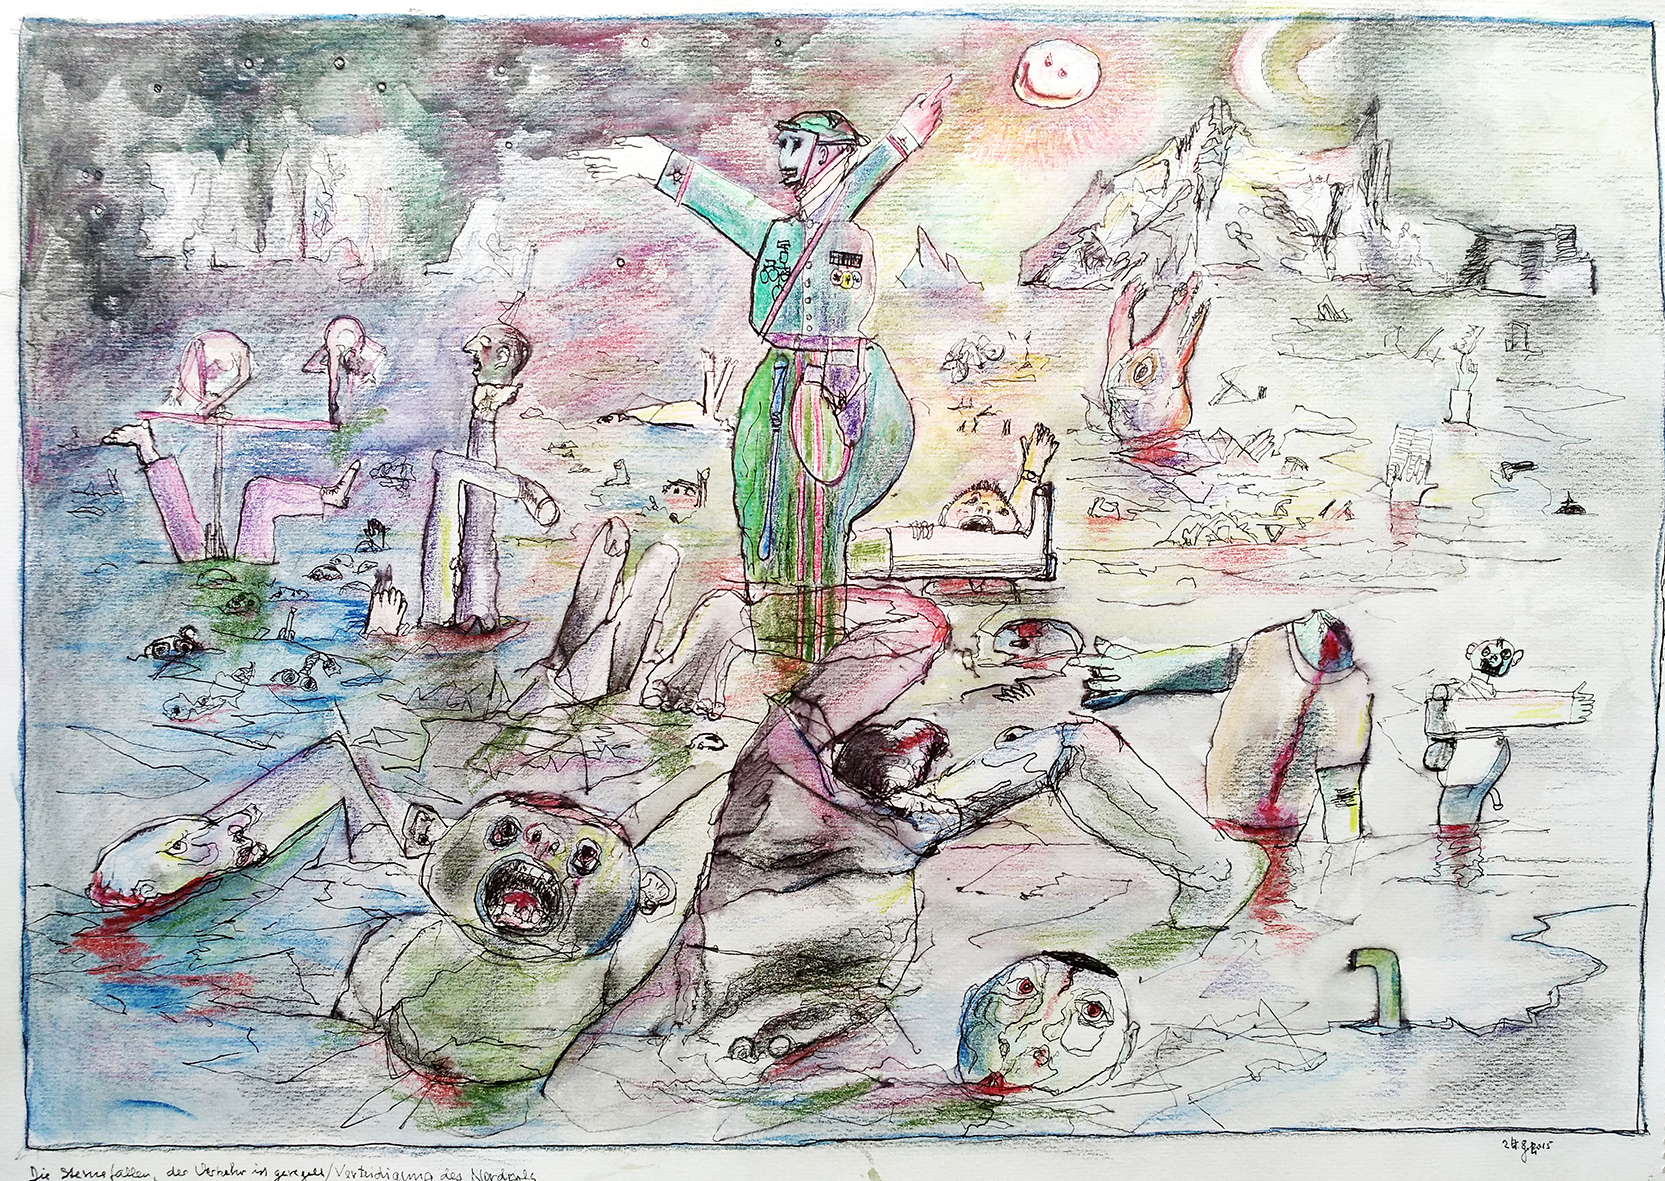 Verteidigung des Nordpols, 2015. Watercolor pen, ink on paper. 45,5 x 64 cm, framed.